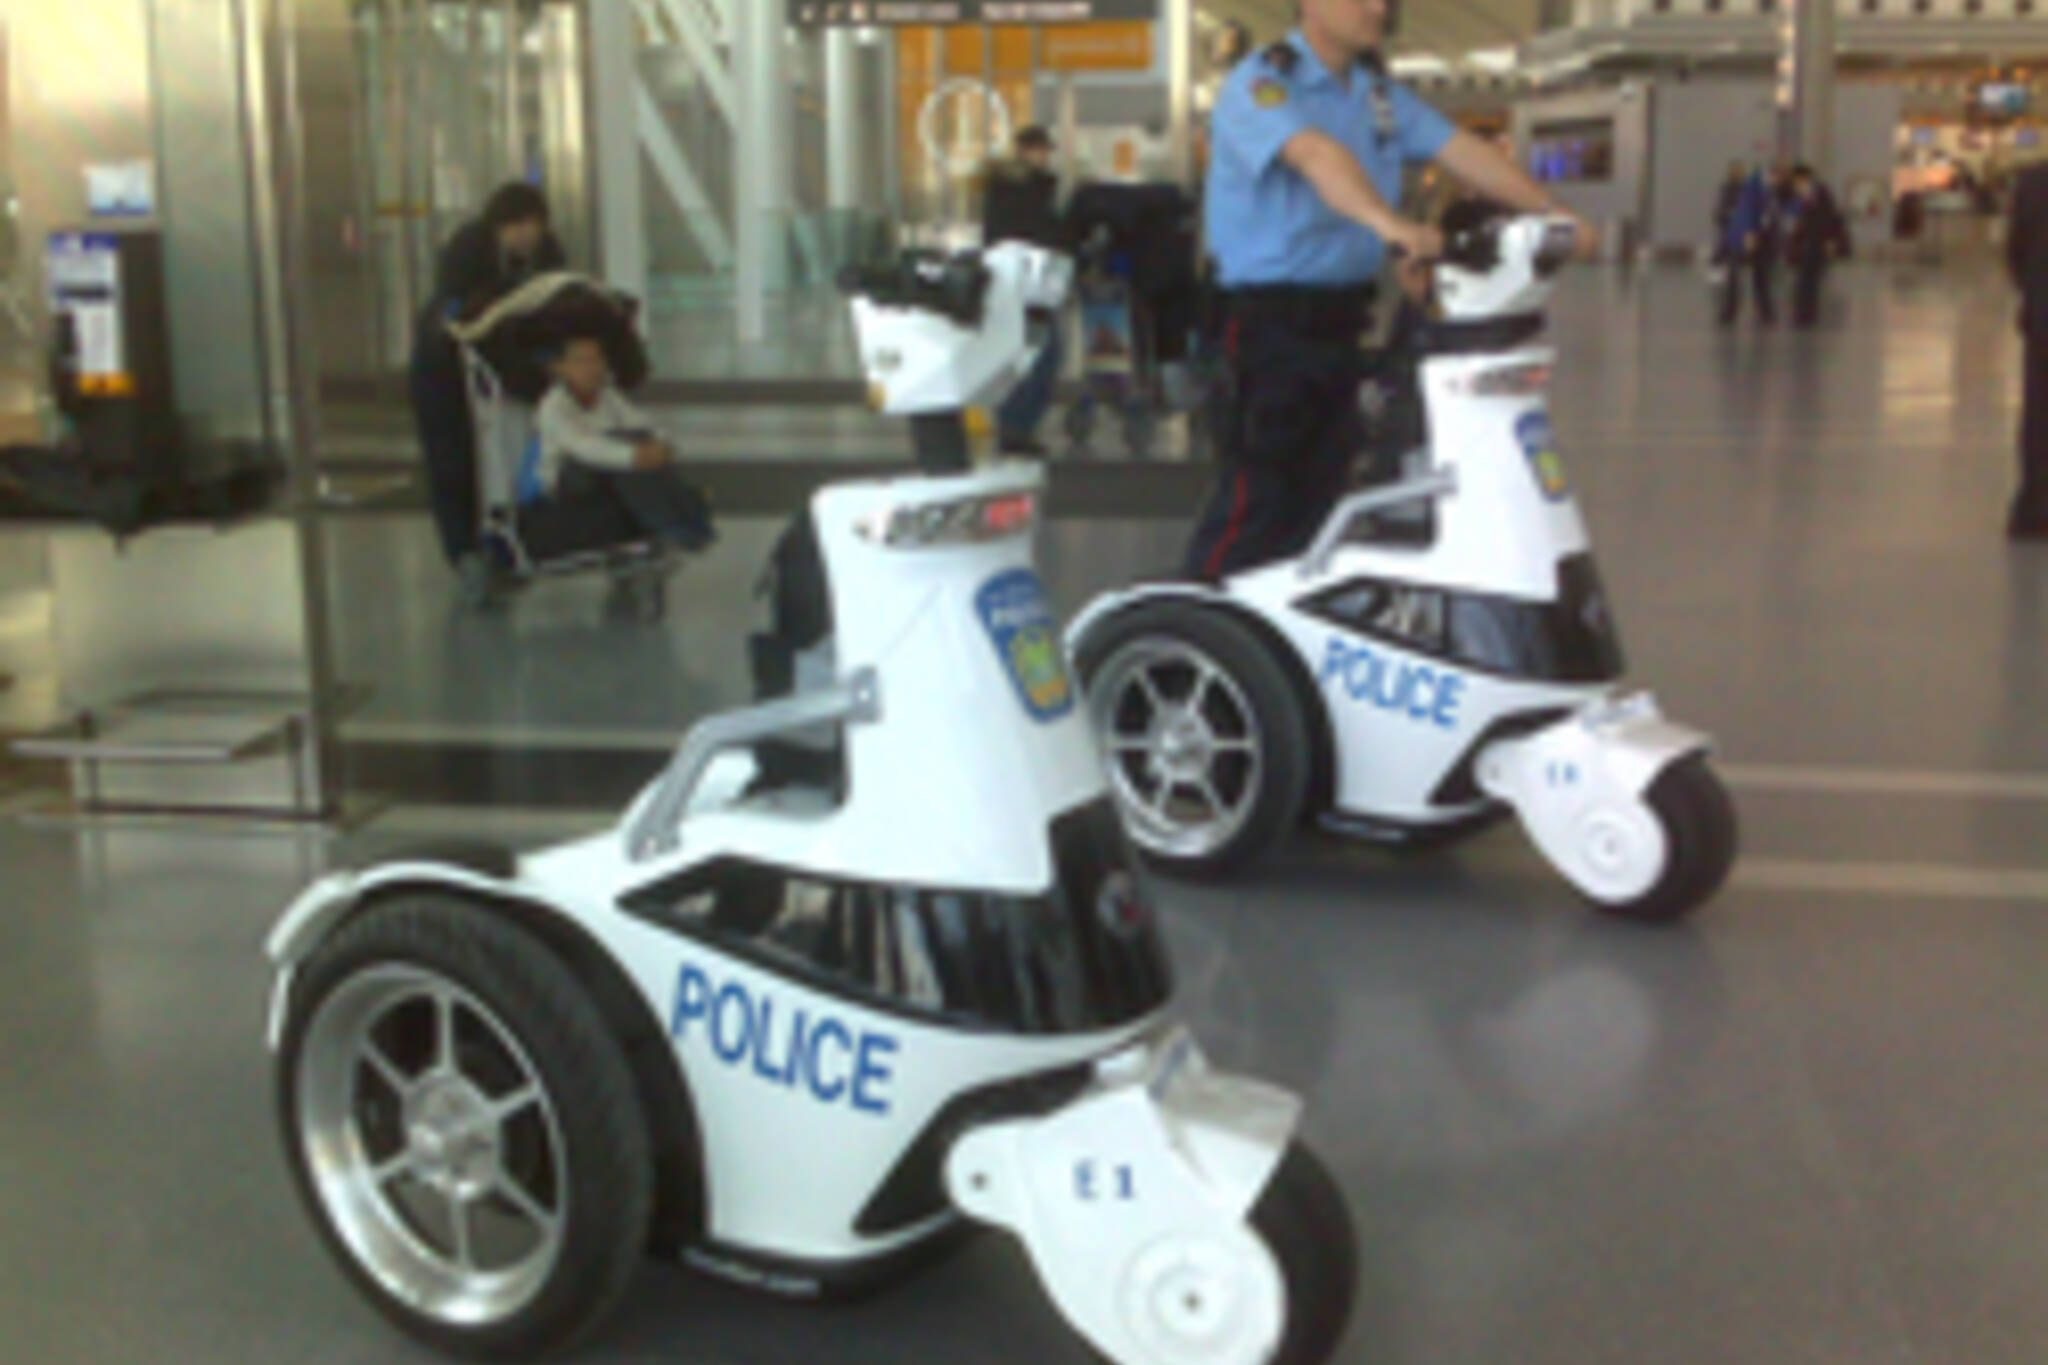 Police T3s at Pearson